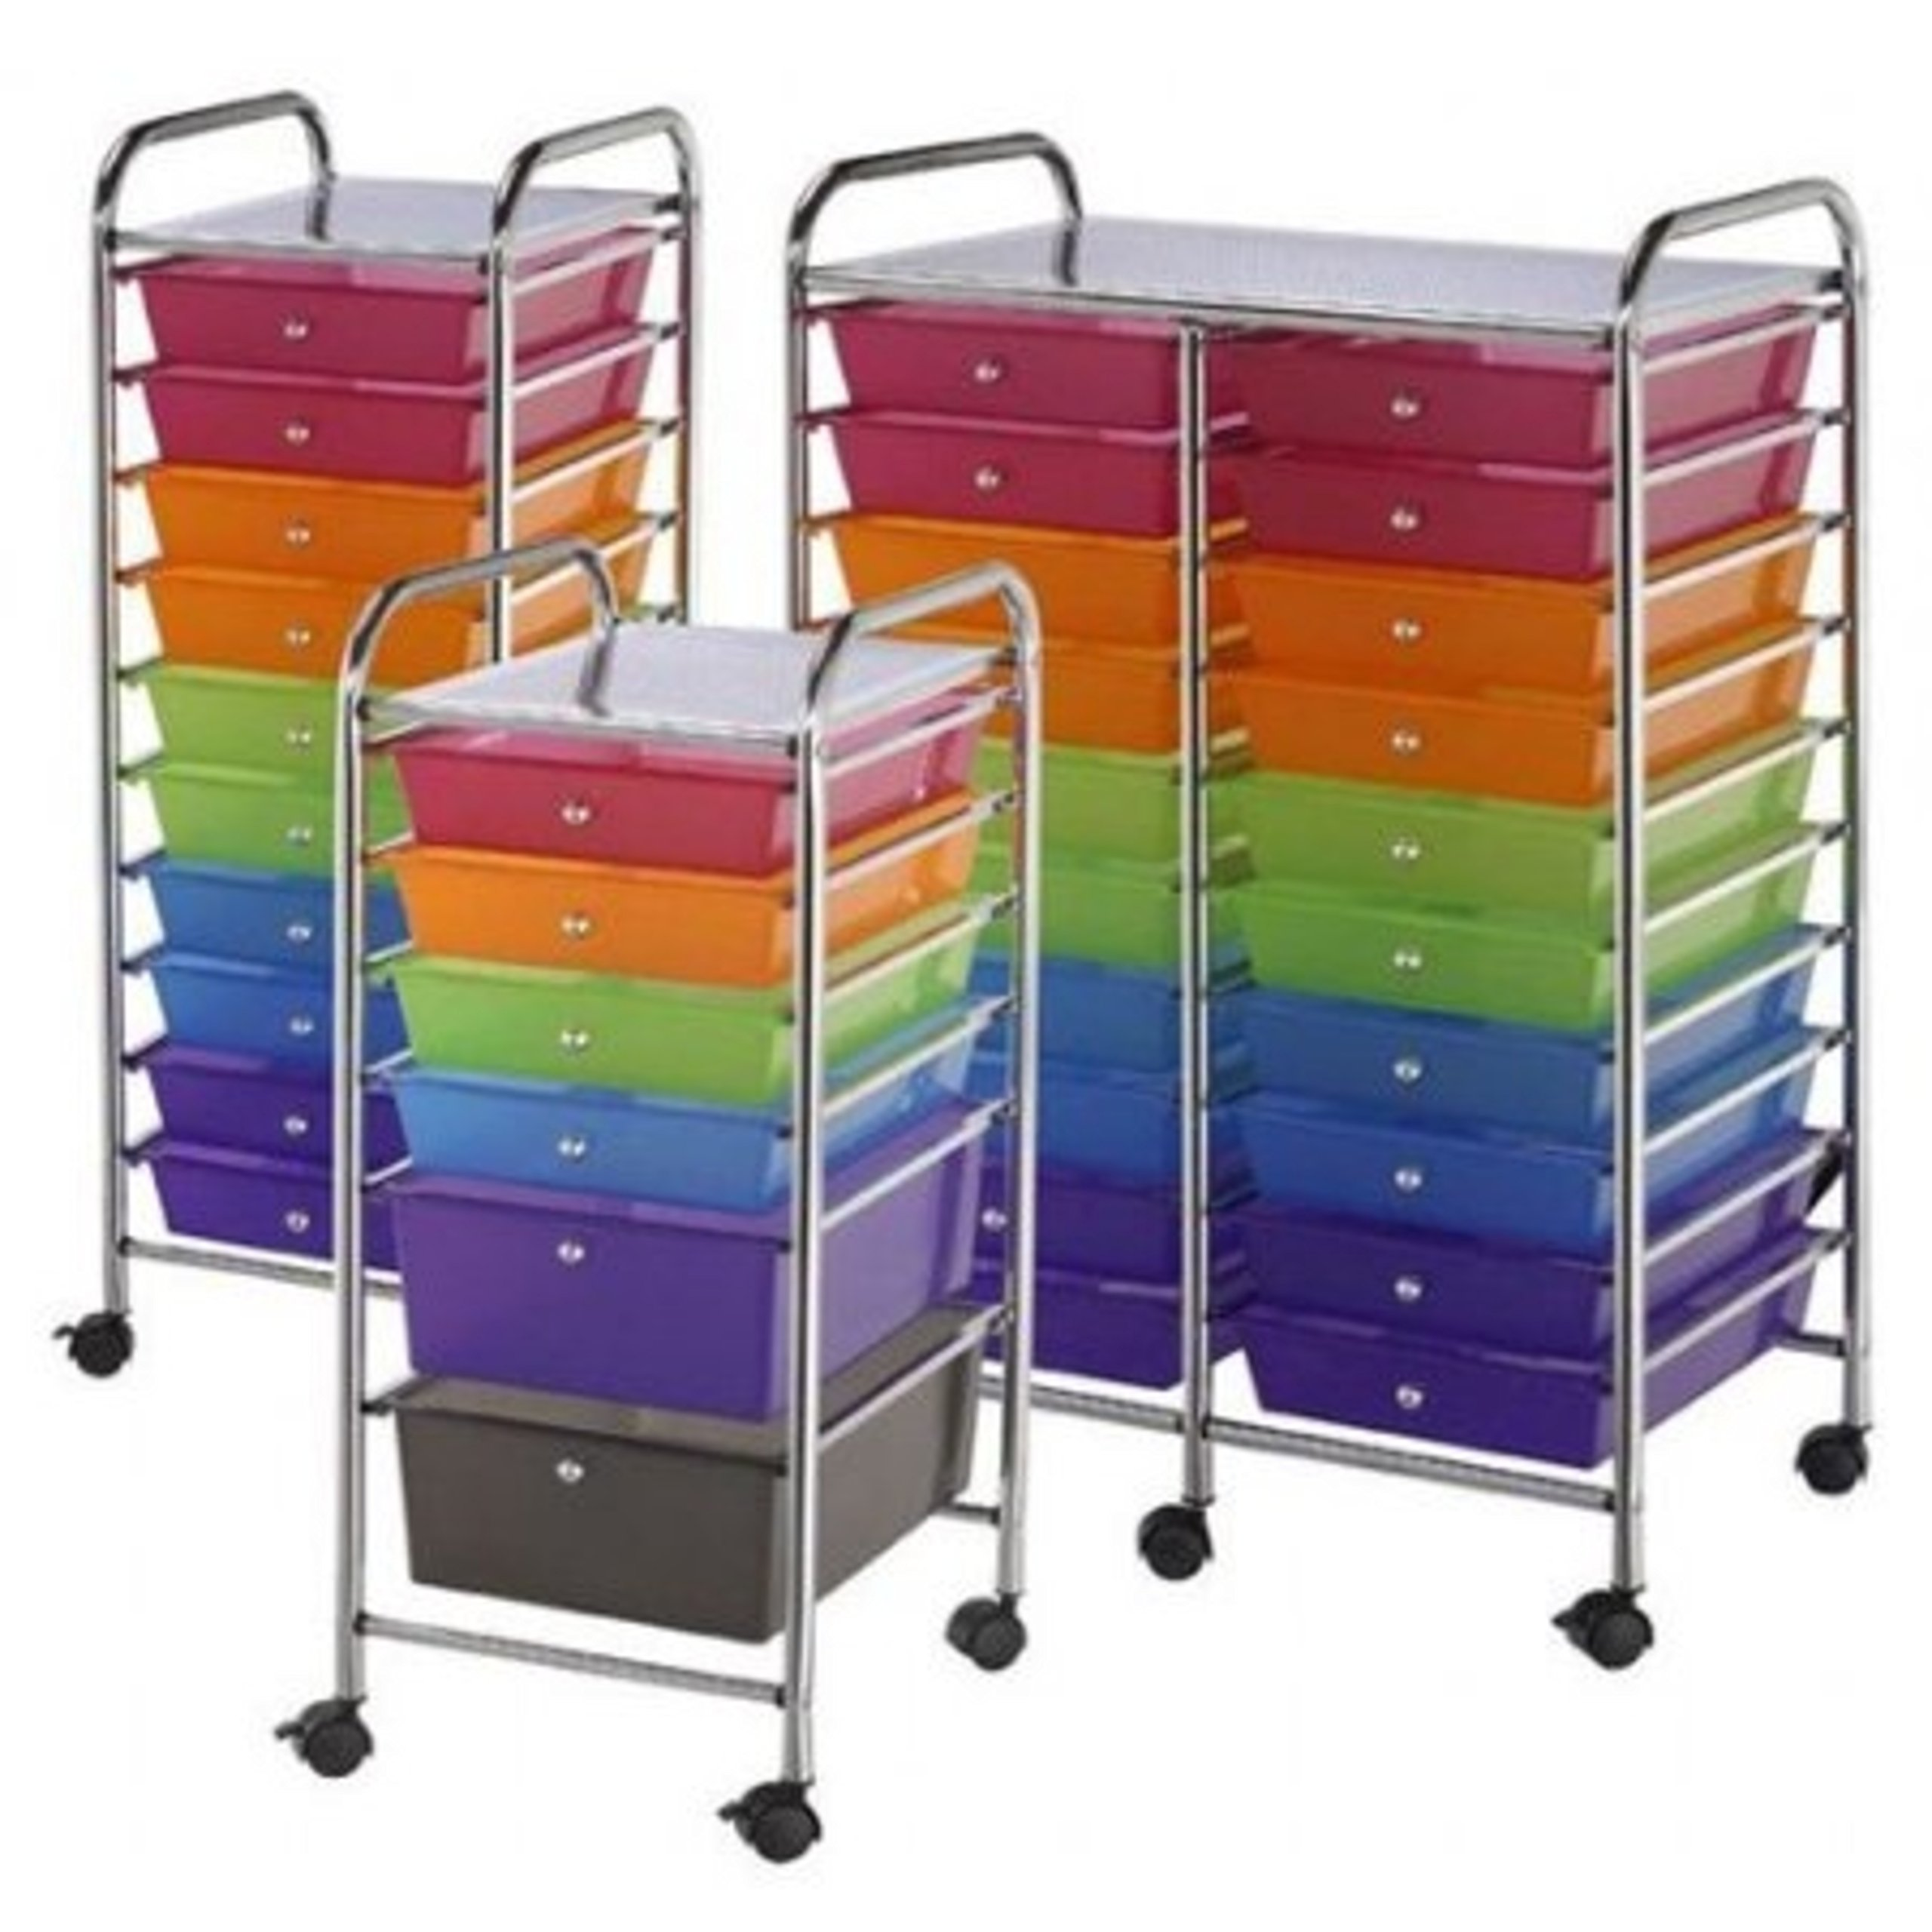 10 Pull Out Multicolored Storage Drawers Steel Frame Mobile Organizer by Storage Drawers (Image #3)